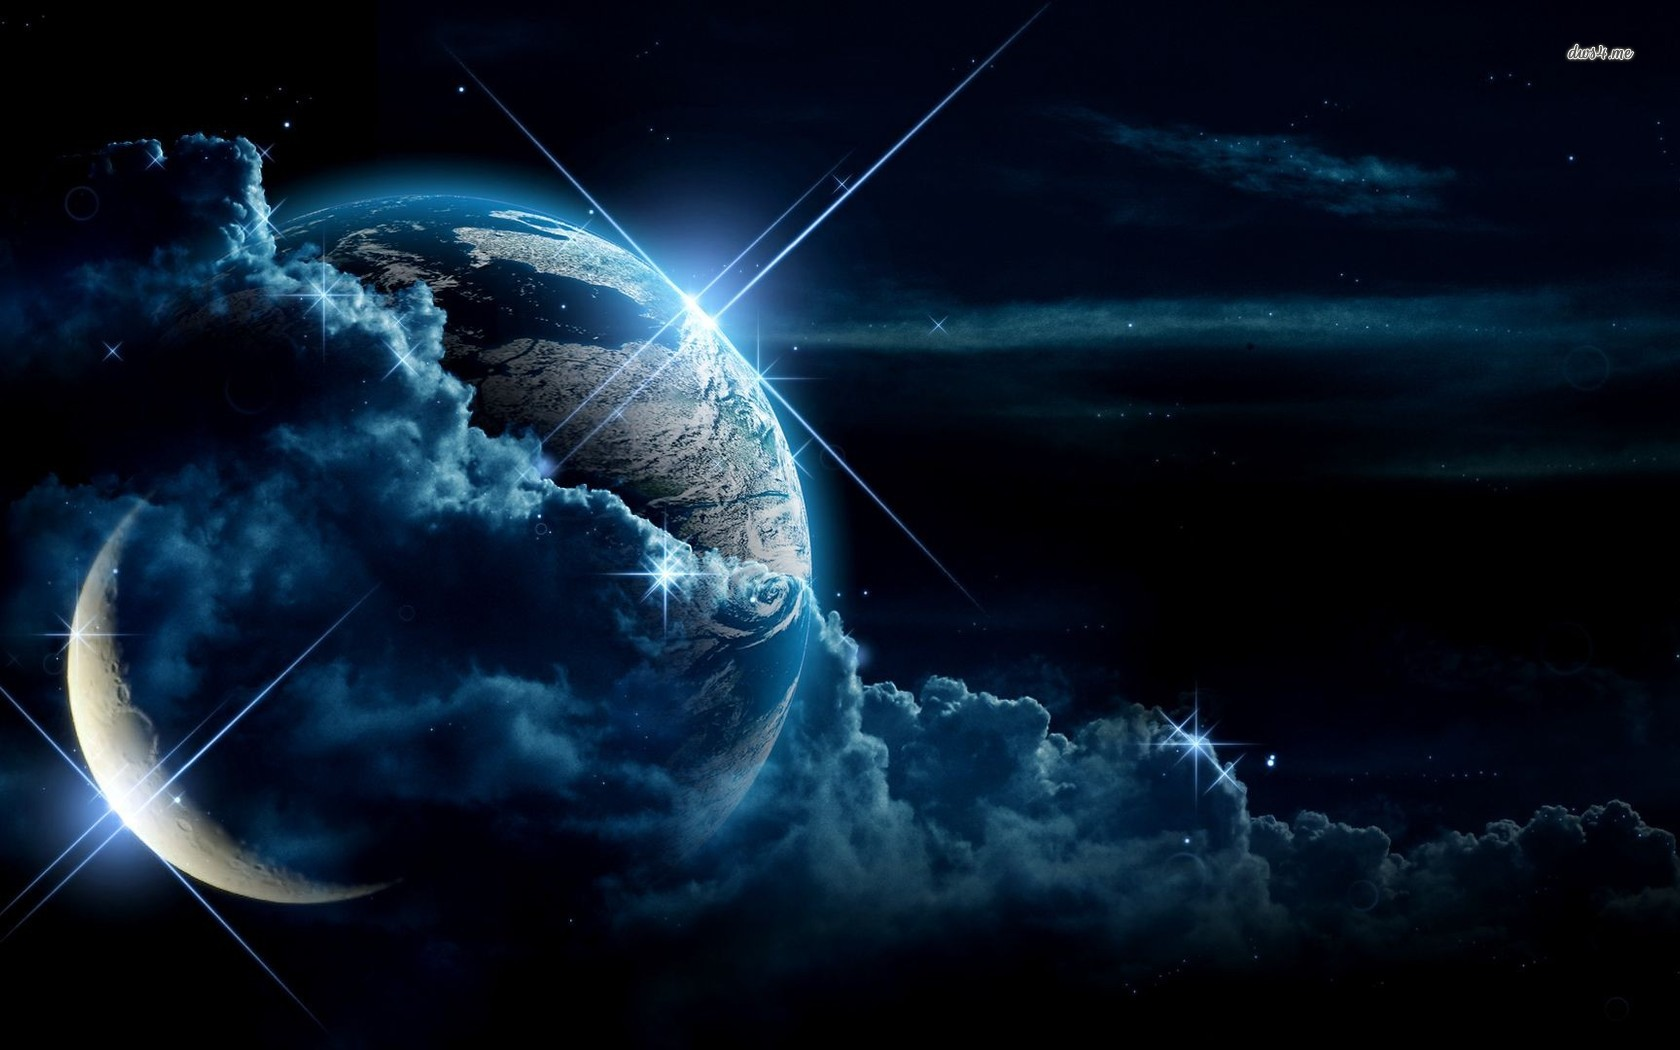 ... Earth and moon between the clouds wallpaper 1680x1050 ...